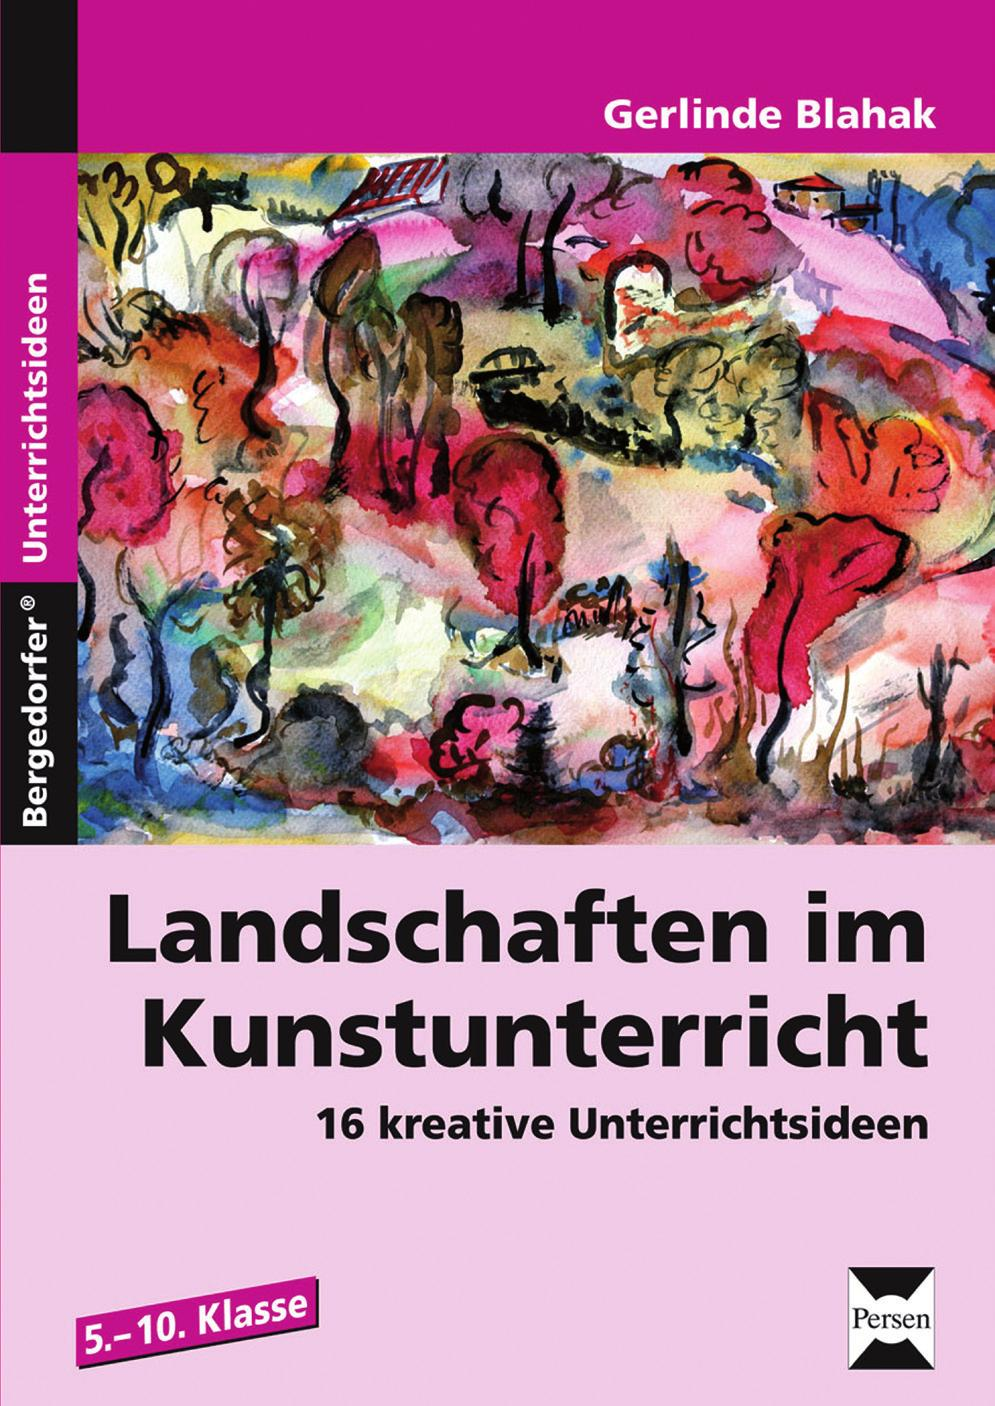 DOWNLOAD Gerlinde Blahak Pop-Art-Landschaft Landschaften im